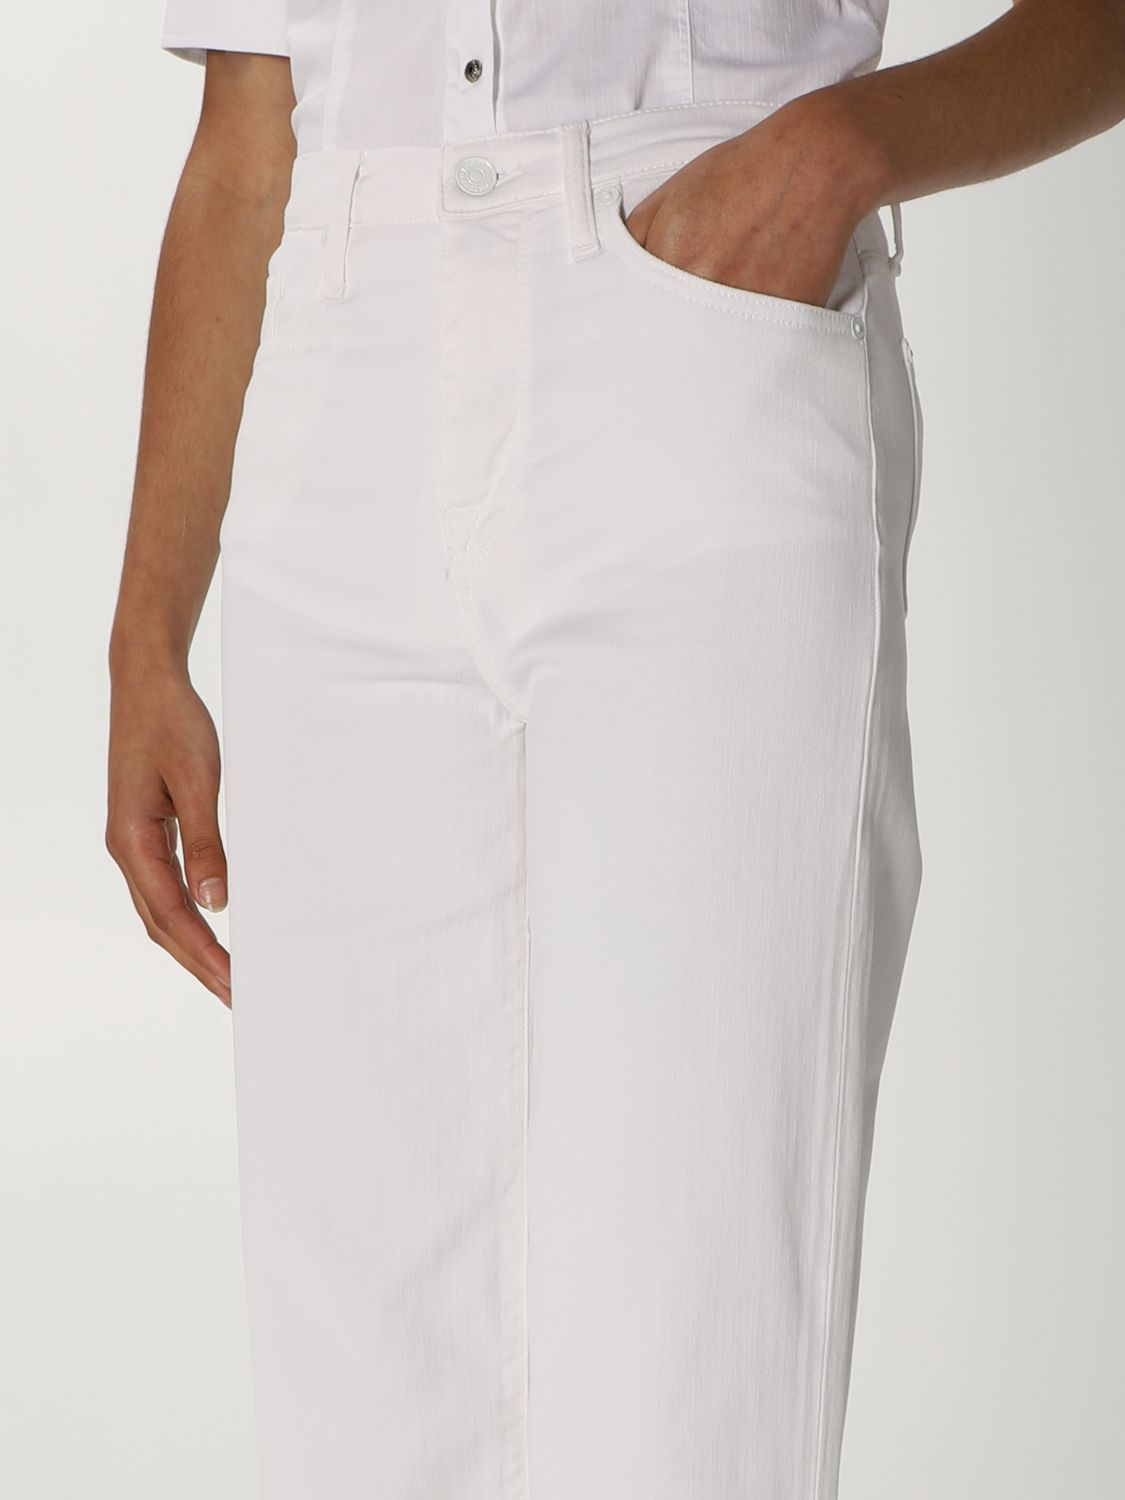 Jeans 7 For All Mankind: Jeans mujer 7 For All Mankind blanco 3